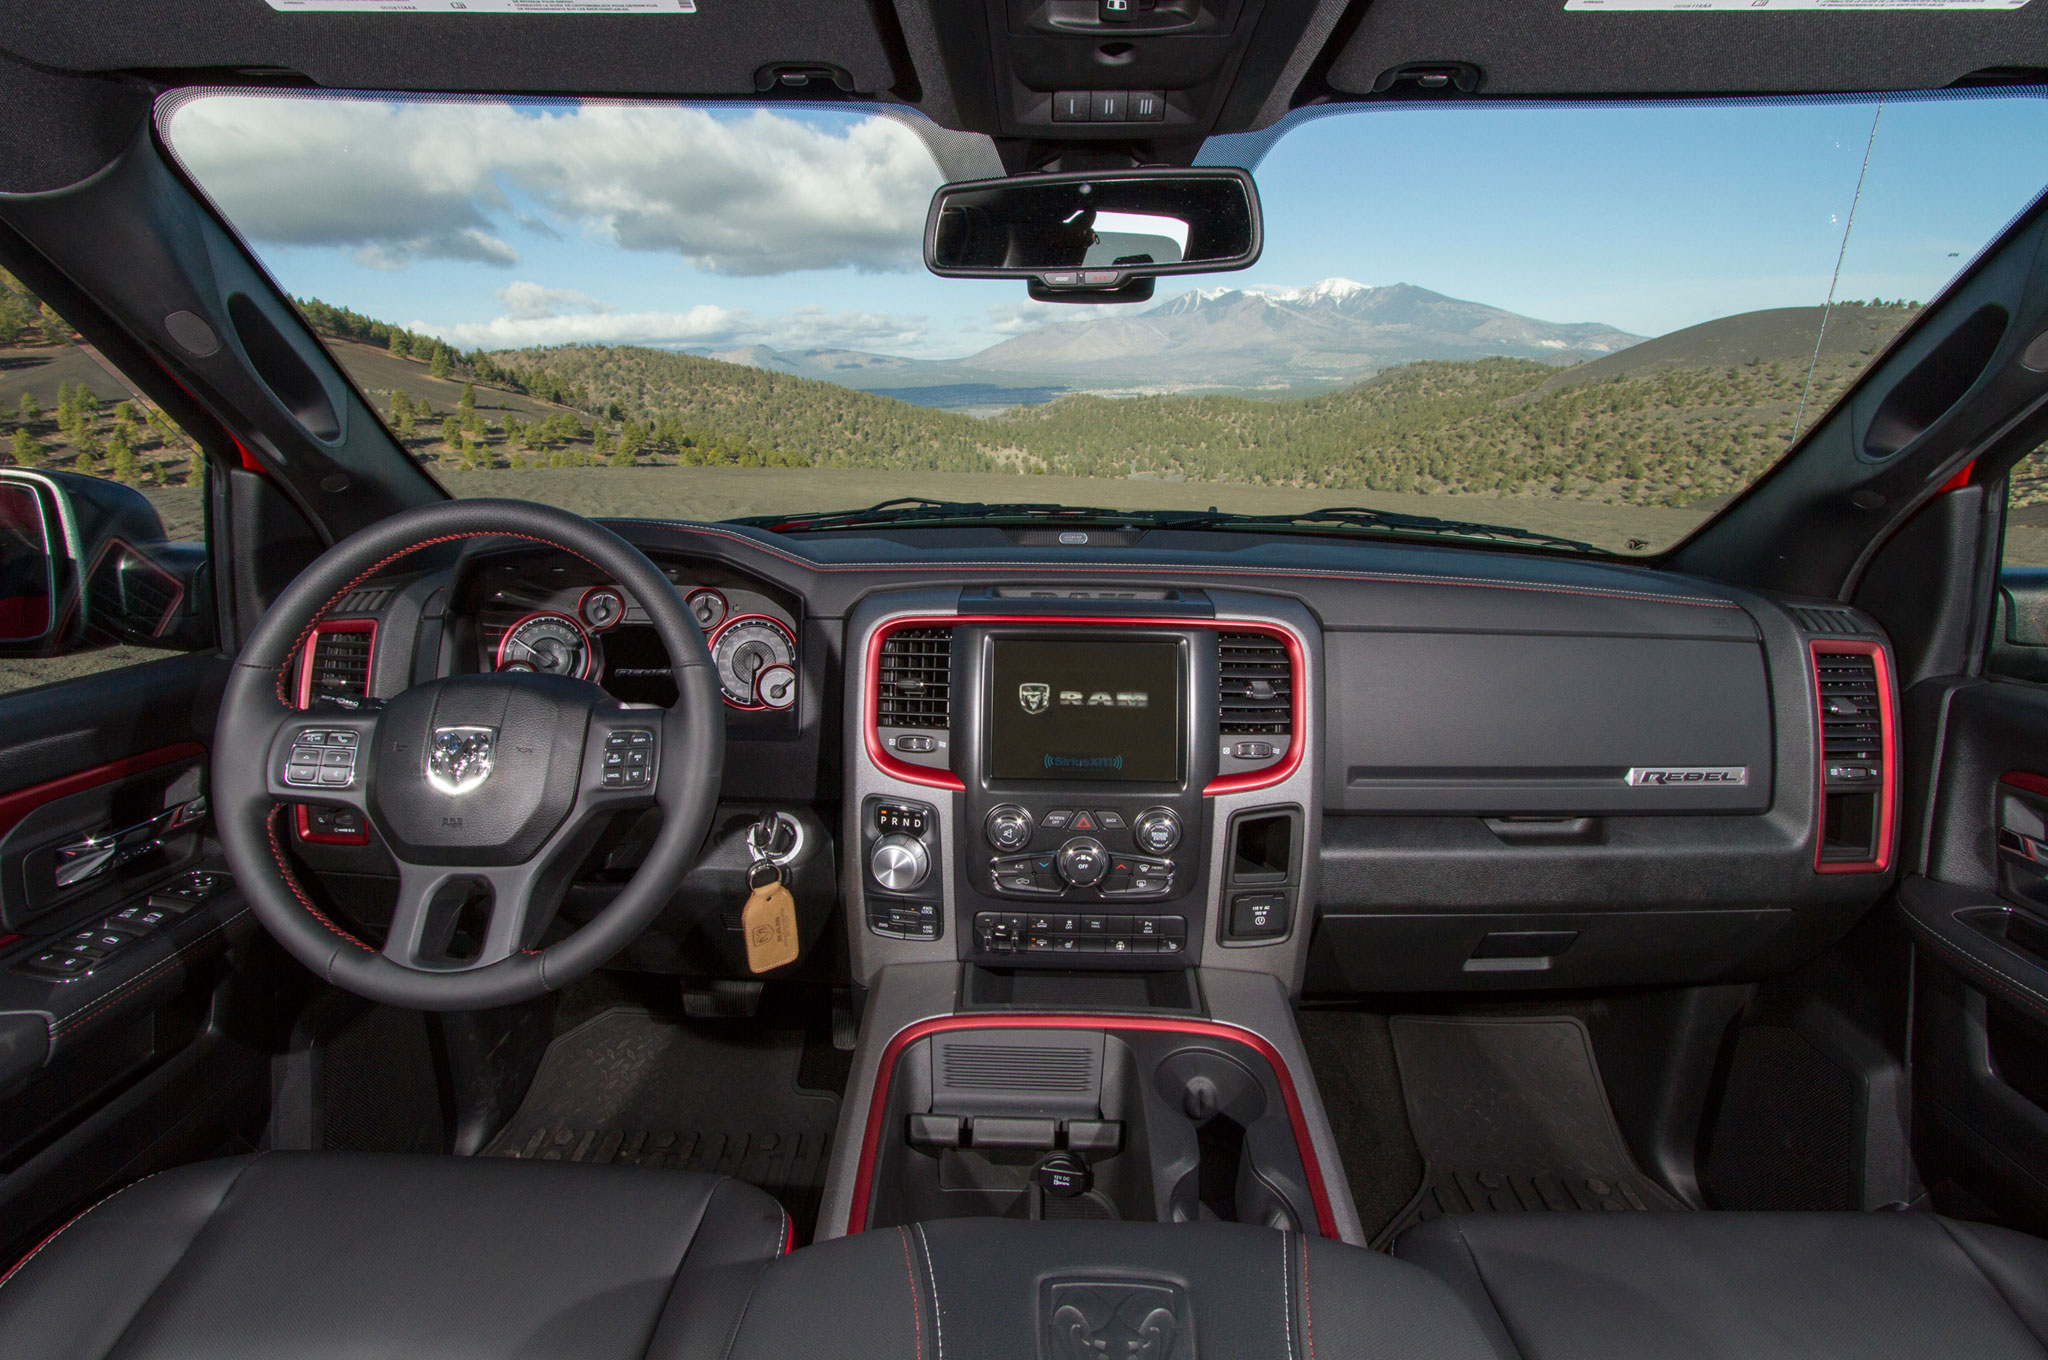 2016 Ram 1500 Rebel Crew Cab 4x4 Review